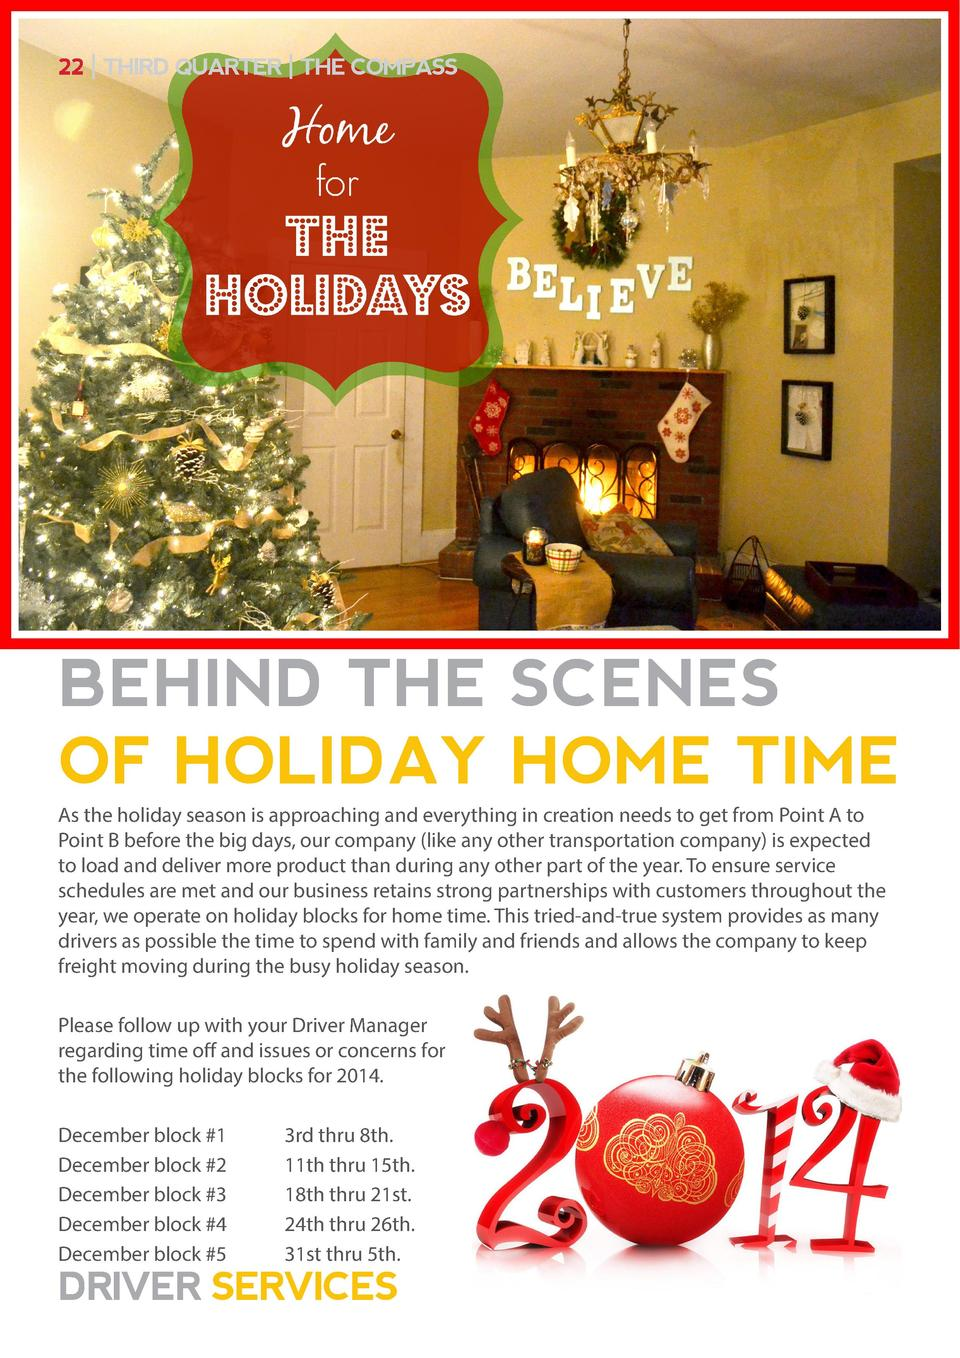 22   THIRD QUARTER   THE COMPASS  BEHIND THE SCENES OF HOLIDAY HOME TIME As the holiday season is approaching and everythi...